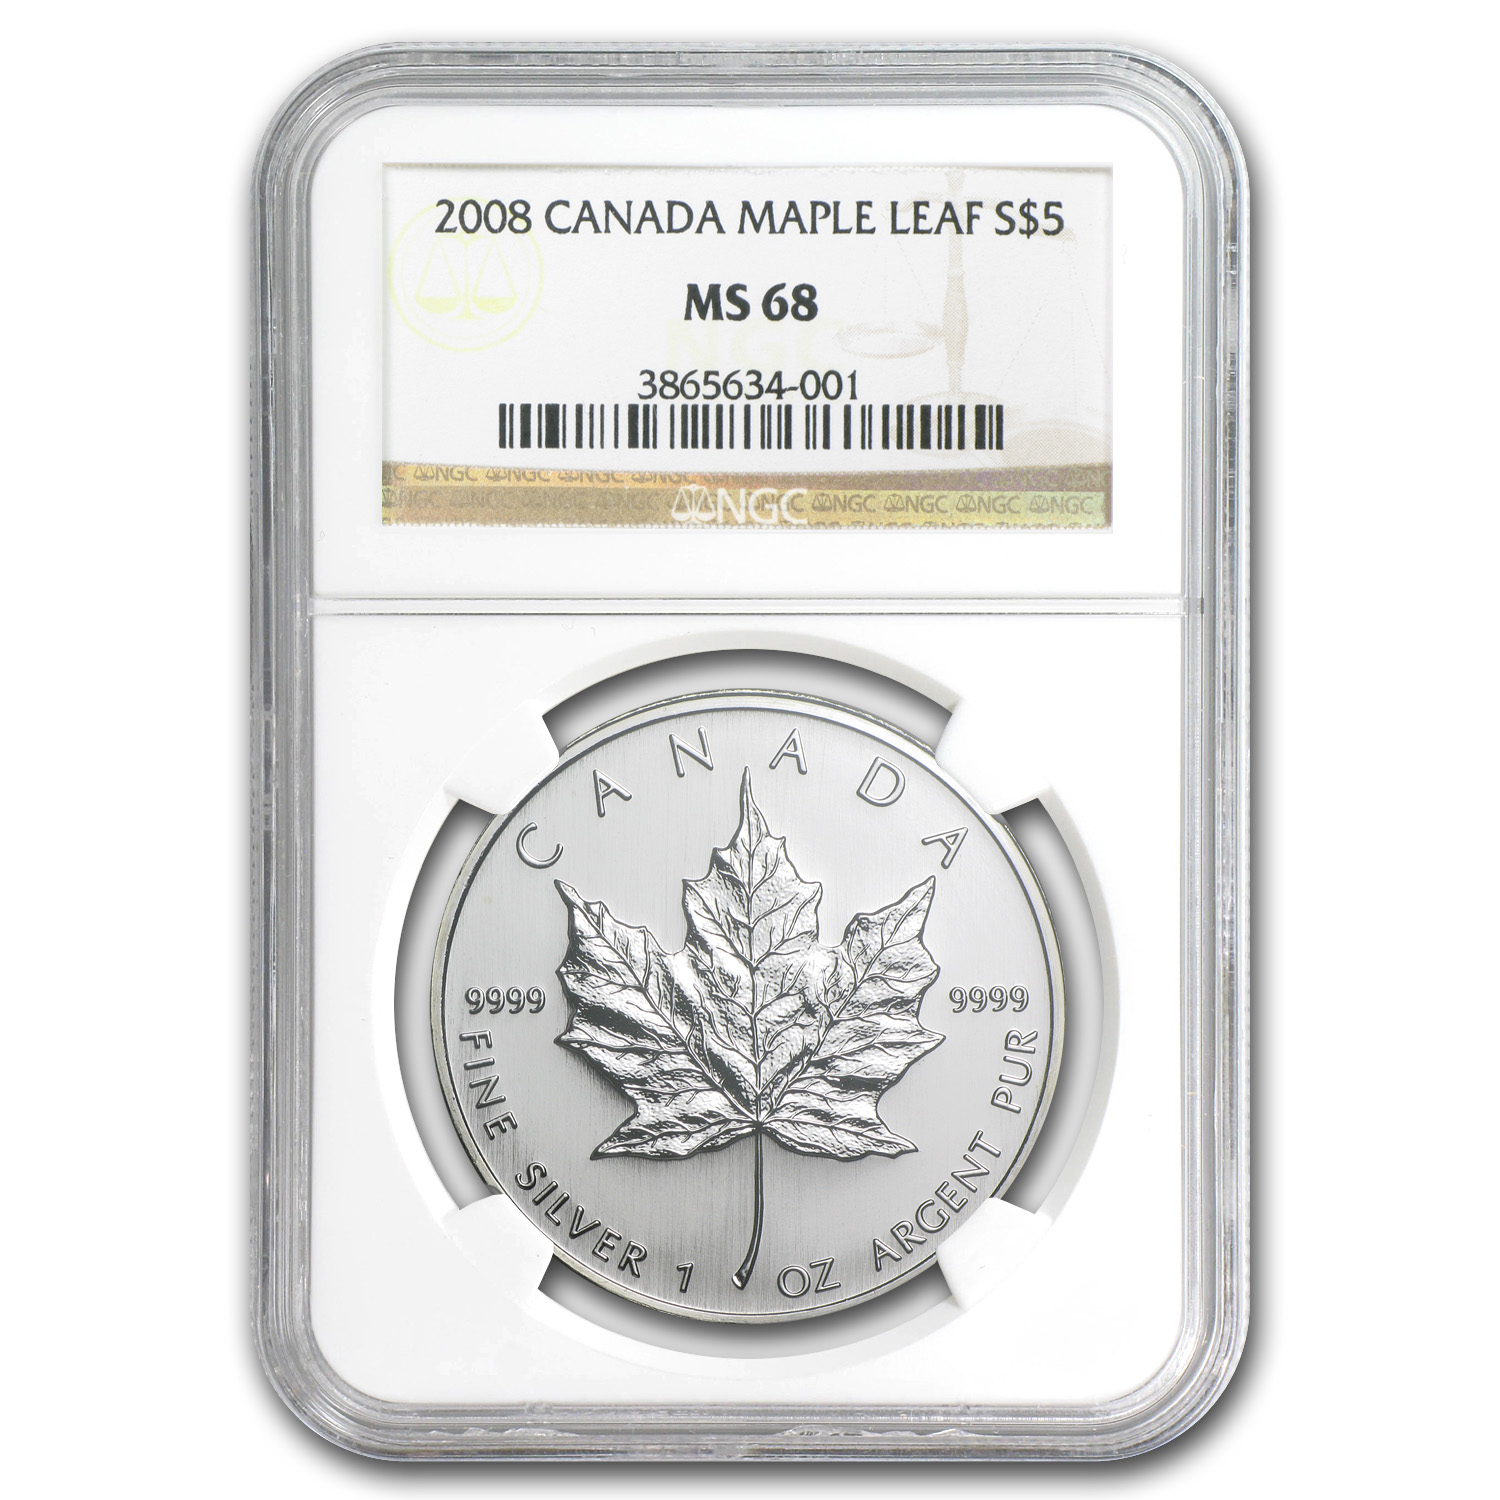 2008 1 oz Silver Canadian Maple Leaf MS-68 NGC